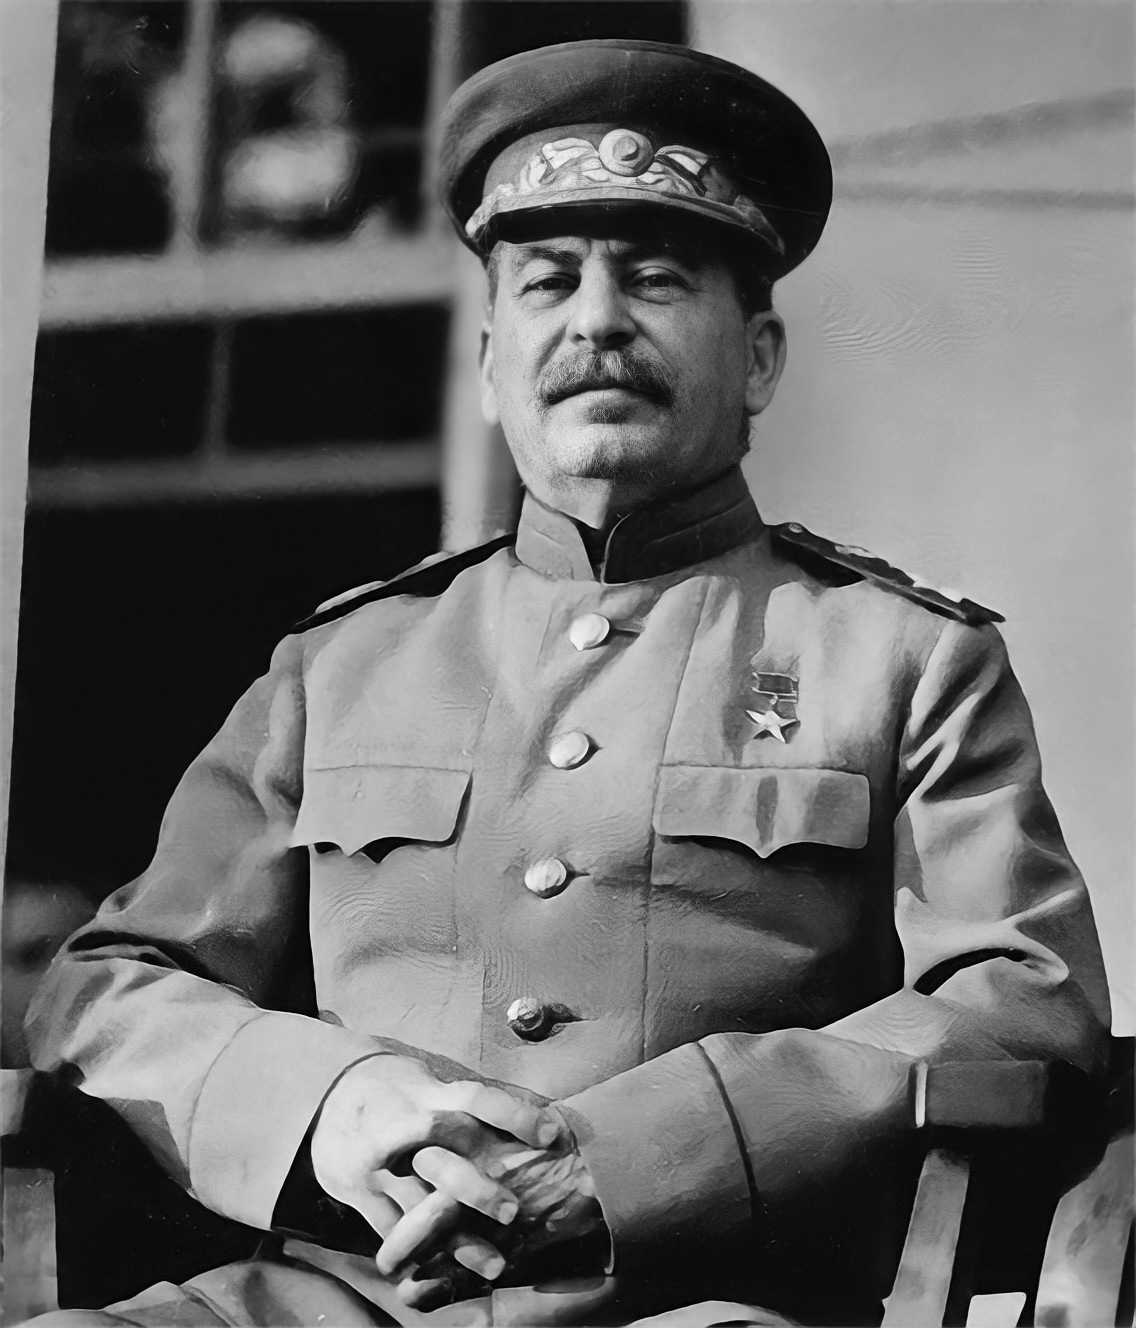 https://i2.wp.com/upload.wikimedia.org/wikipedia/commons/9/9b/CroppedStalin1943.jpg